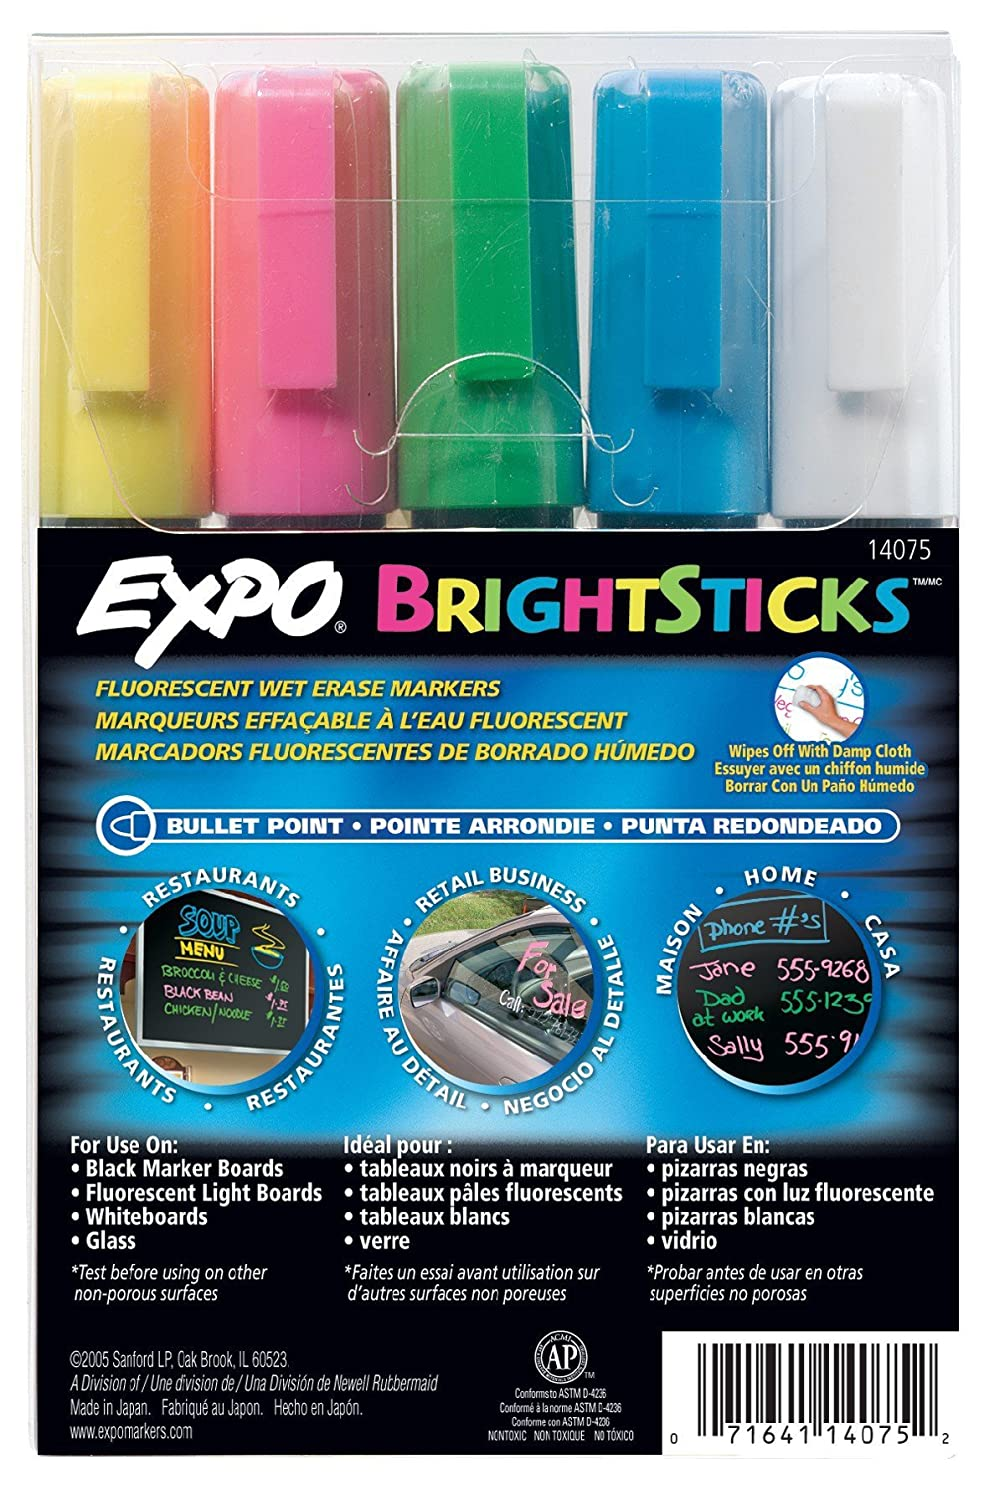 Sanford Wet Bright Sticks Wet-Erase Fluorescent Markers, Assorted Fluorescent Colors, 5-Pack (14075) Newell Rubbermaid Office